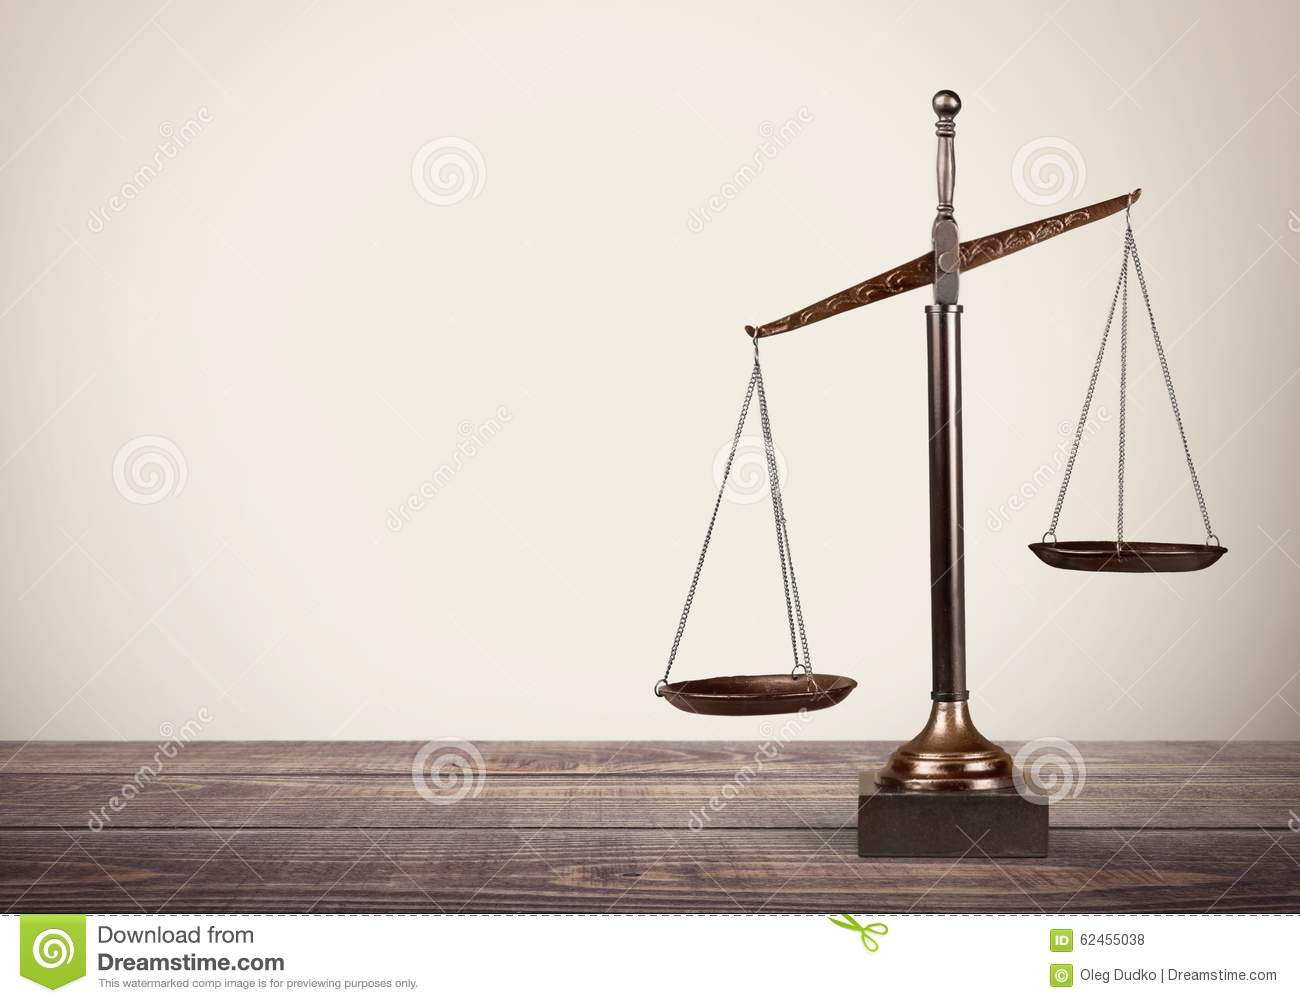 Lawyer Stock Photo - Image: 62455038